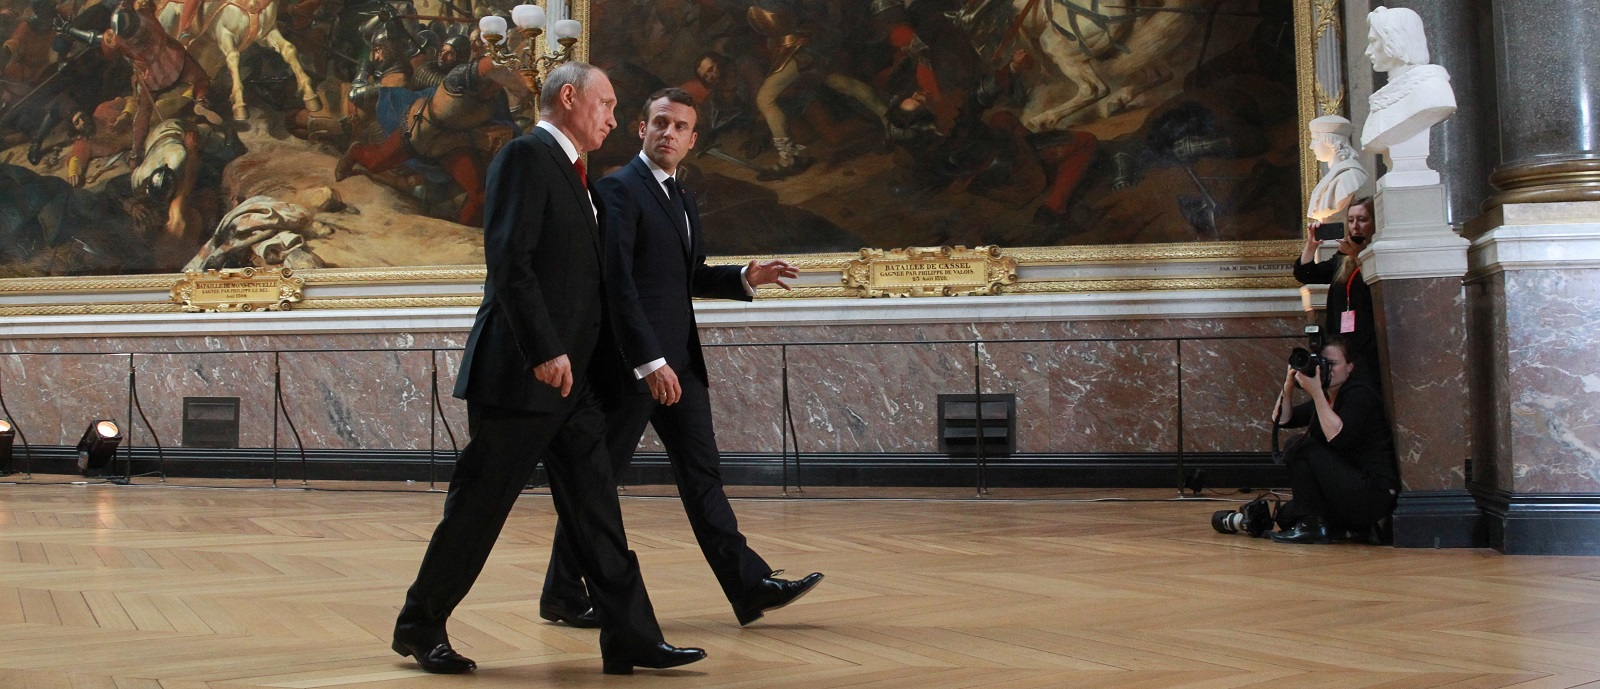 French President Emmanuel Macron (R) and Russian President Vladimir Putin (L) during their meeting on 29 May in Versailles (Photo: Mikhail Svetlov/Getty)